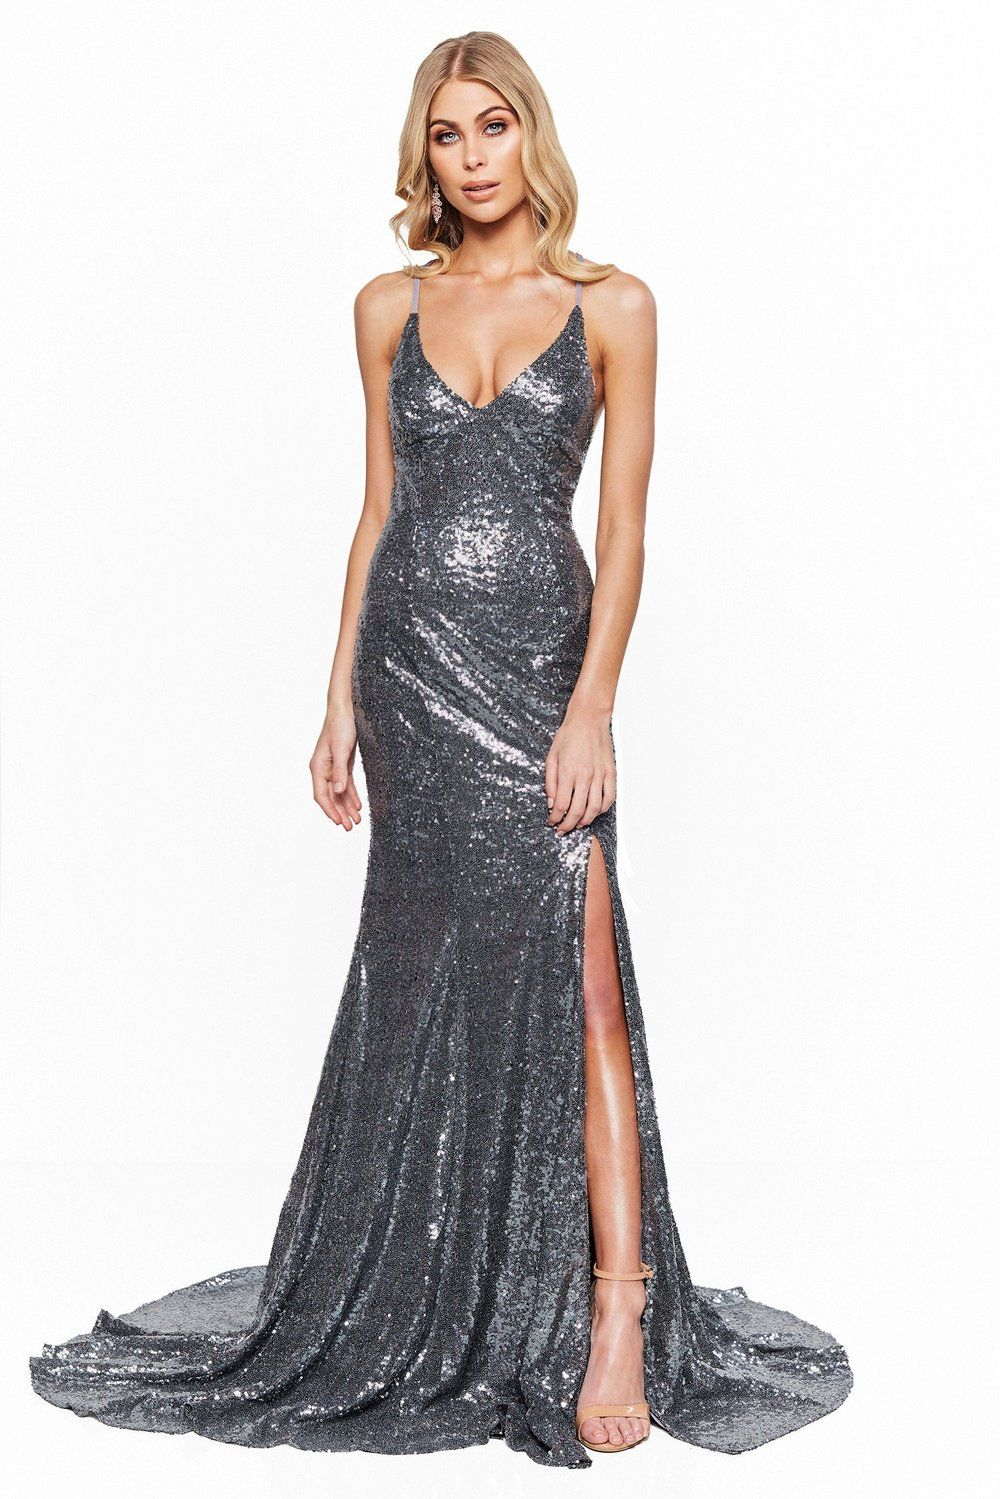 993994b6c23 A N Bridesmaids Kara - Gunmetal Sequin V-Neck Gown with Lace-Up Back